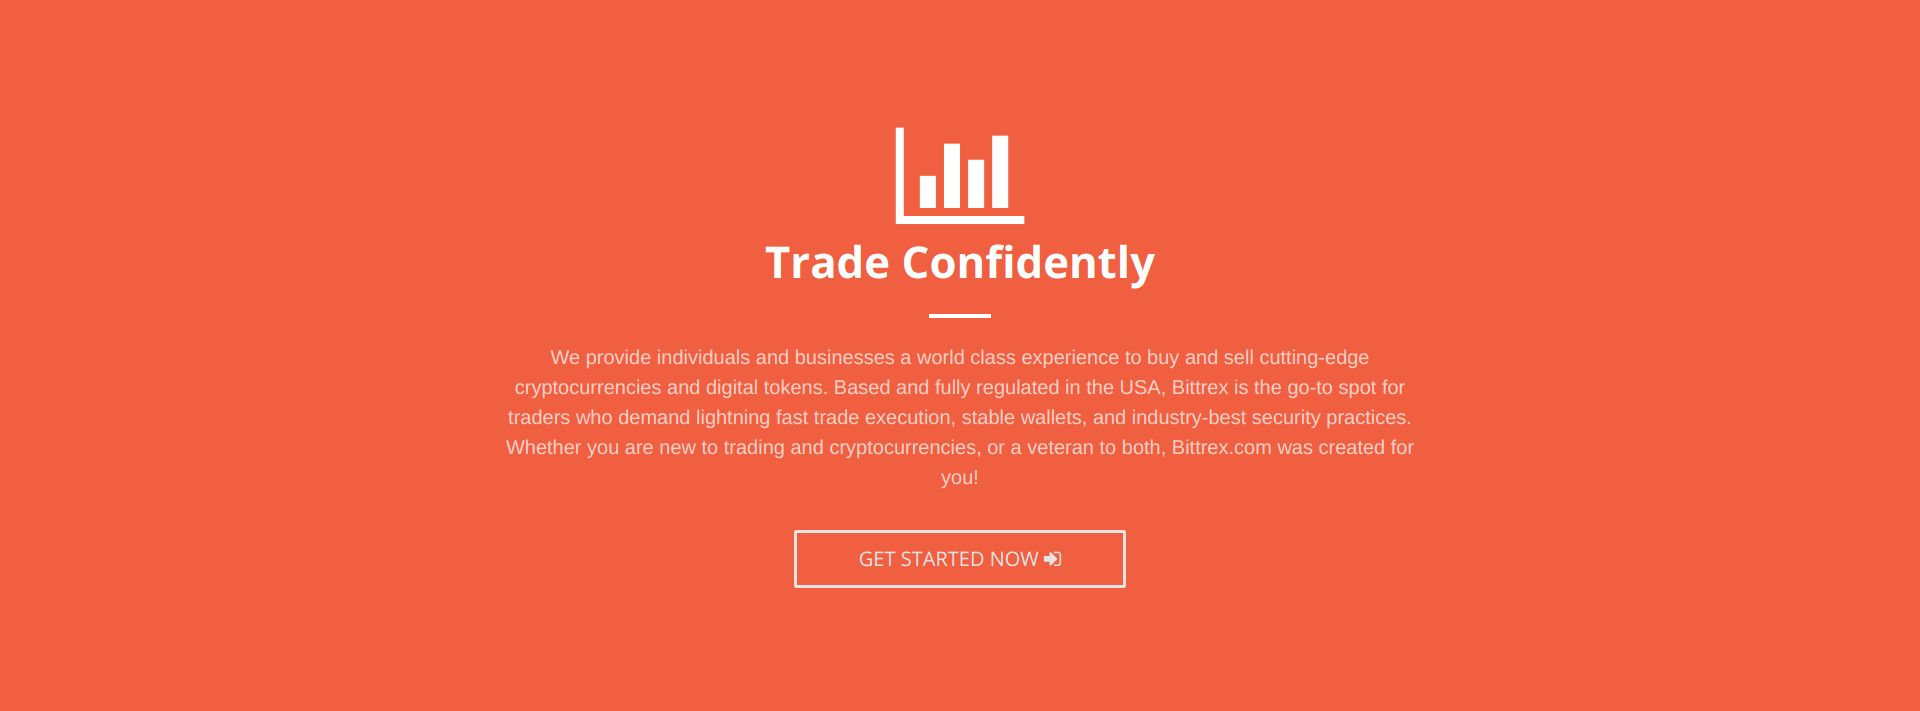 Bittrex Review - Trade Confidently